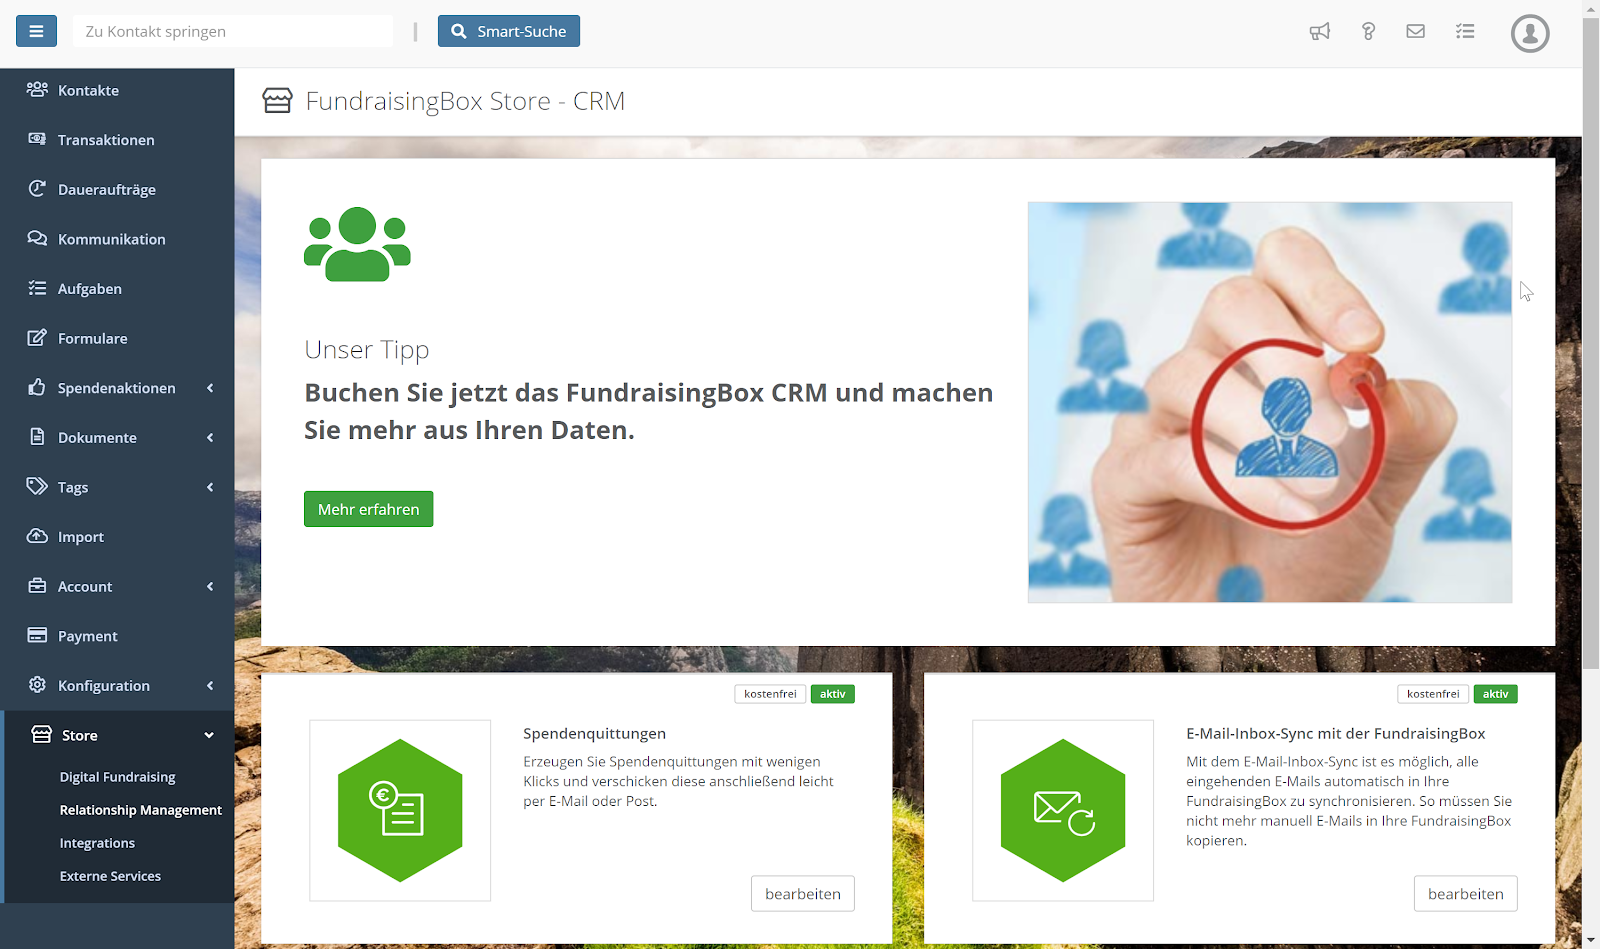 Relationship Management fuer Non Profits von FundraisingBox